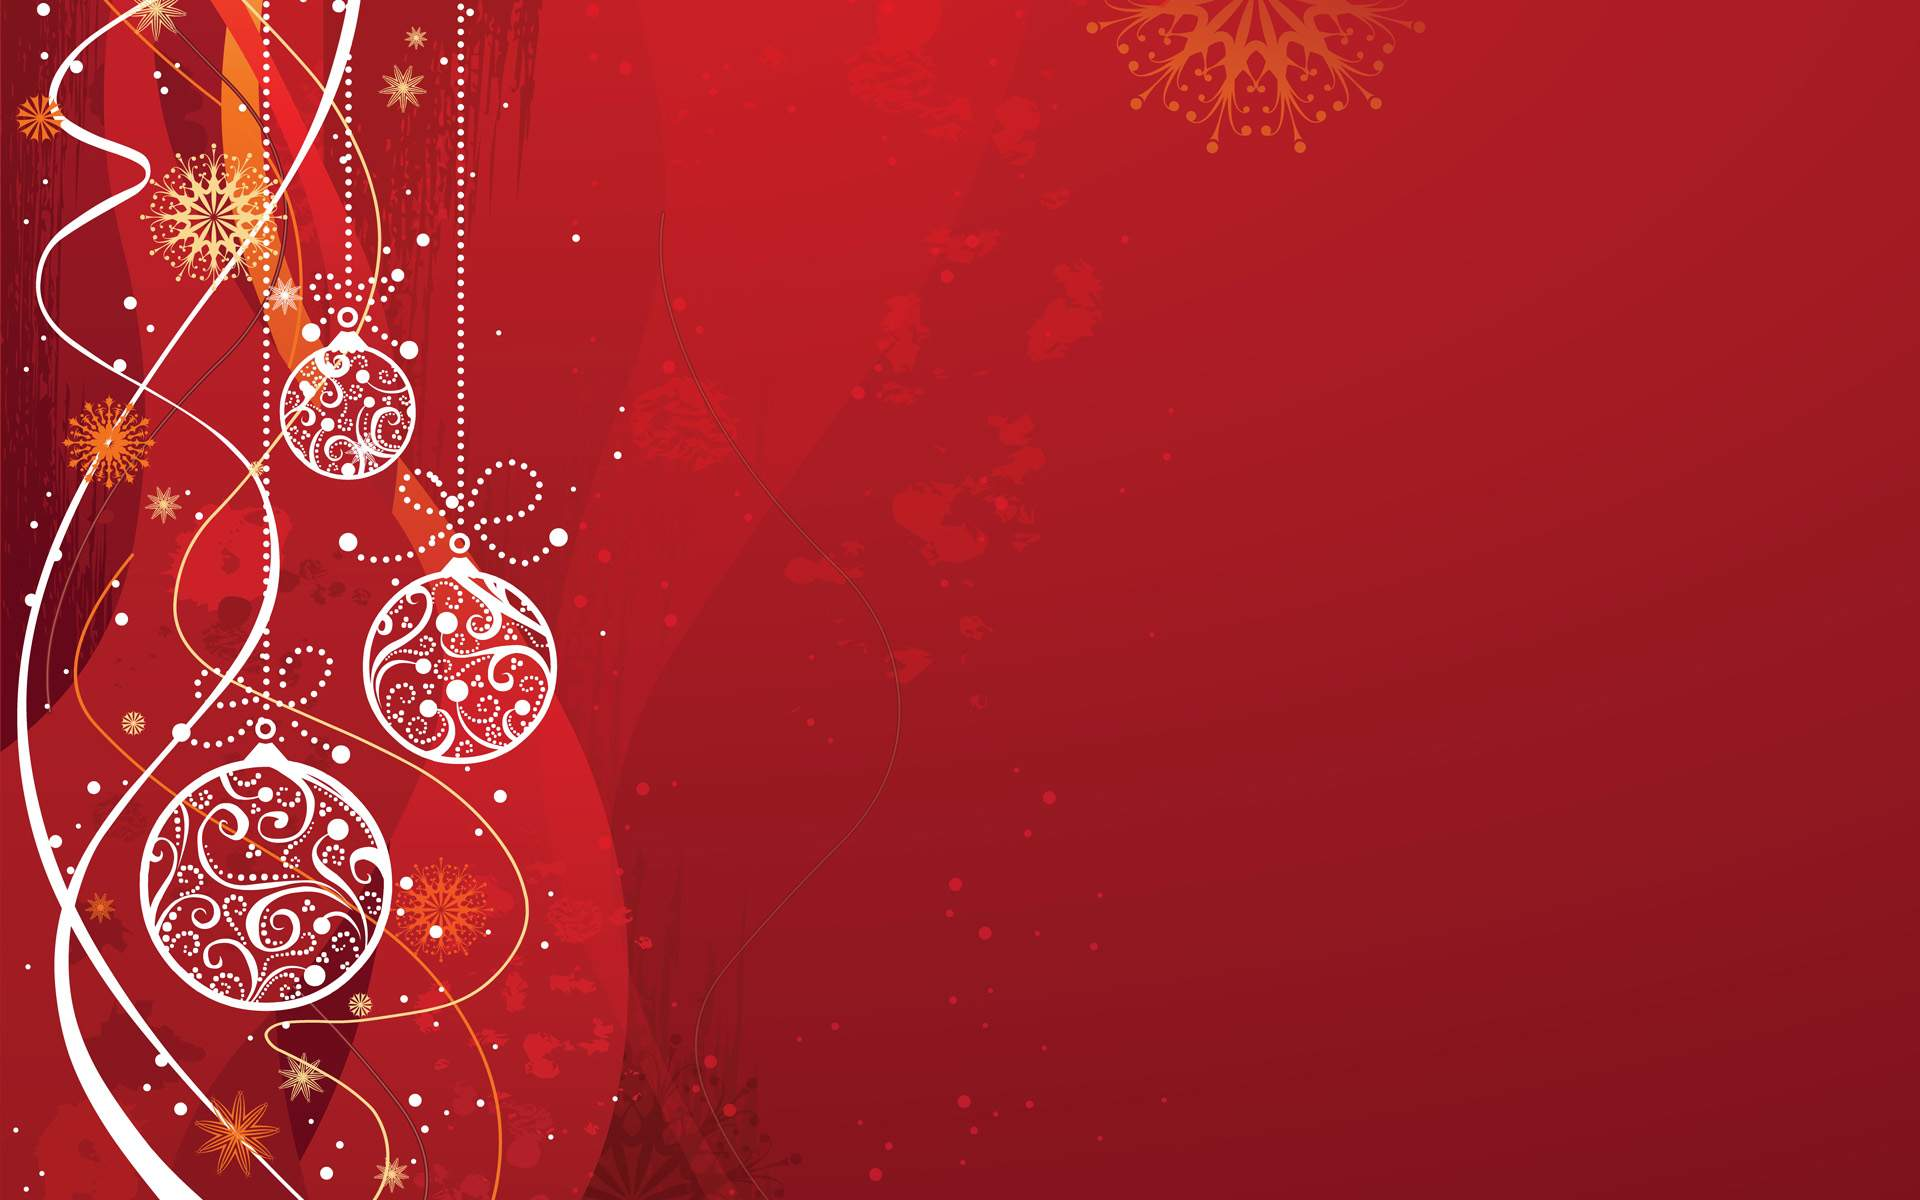 Wallpaper Background Christmas